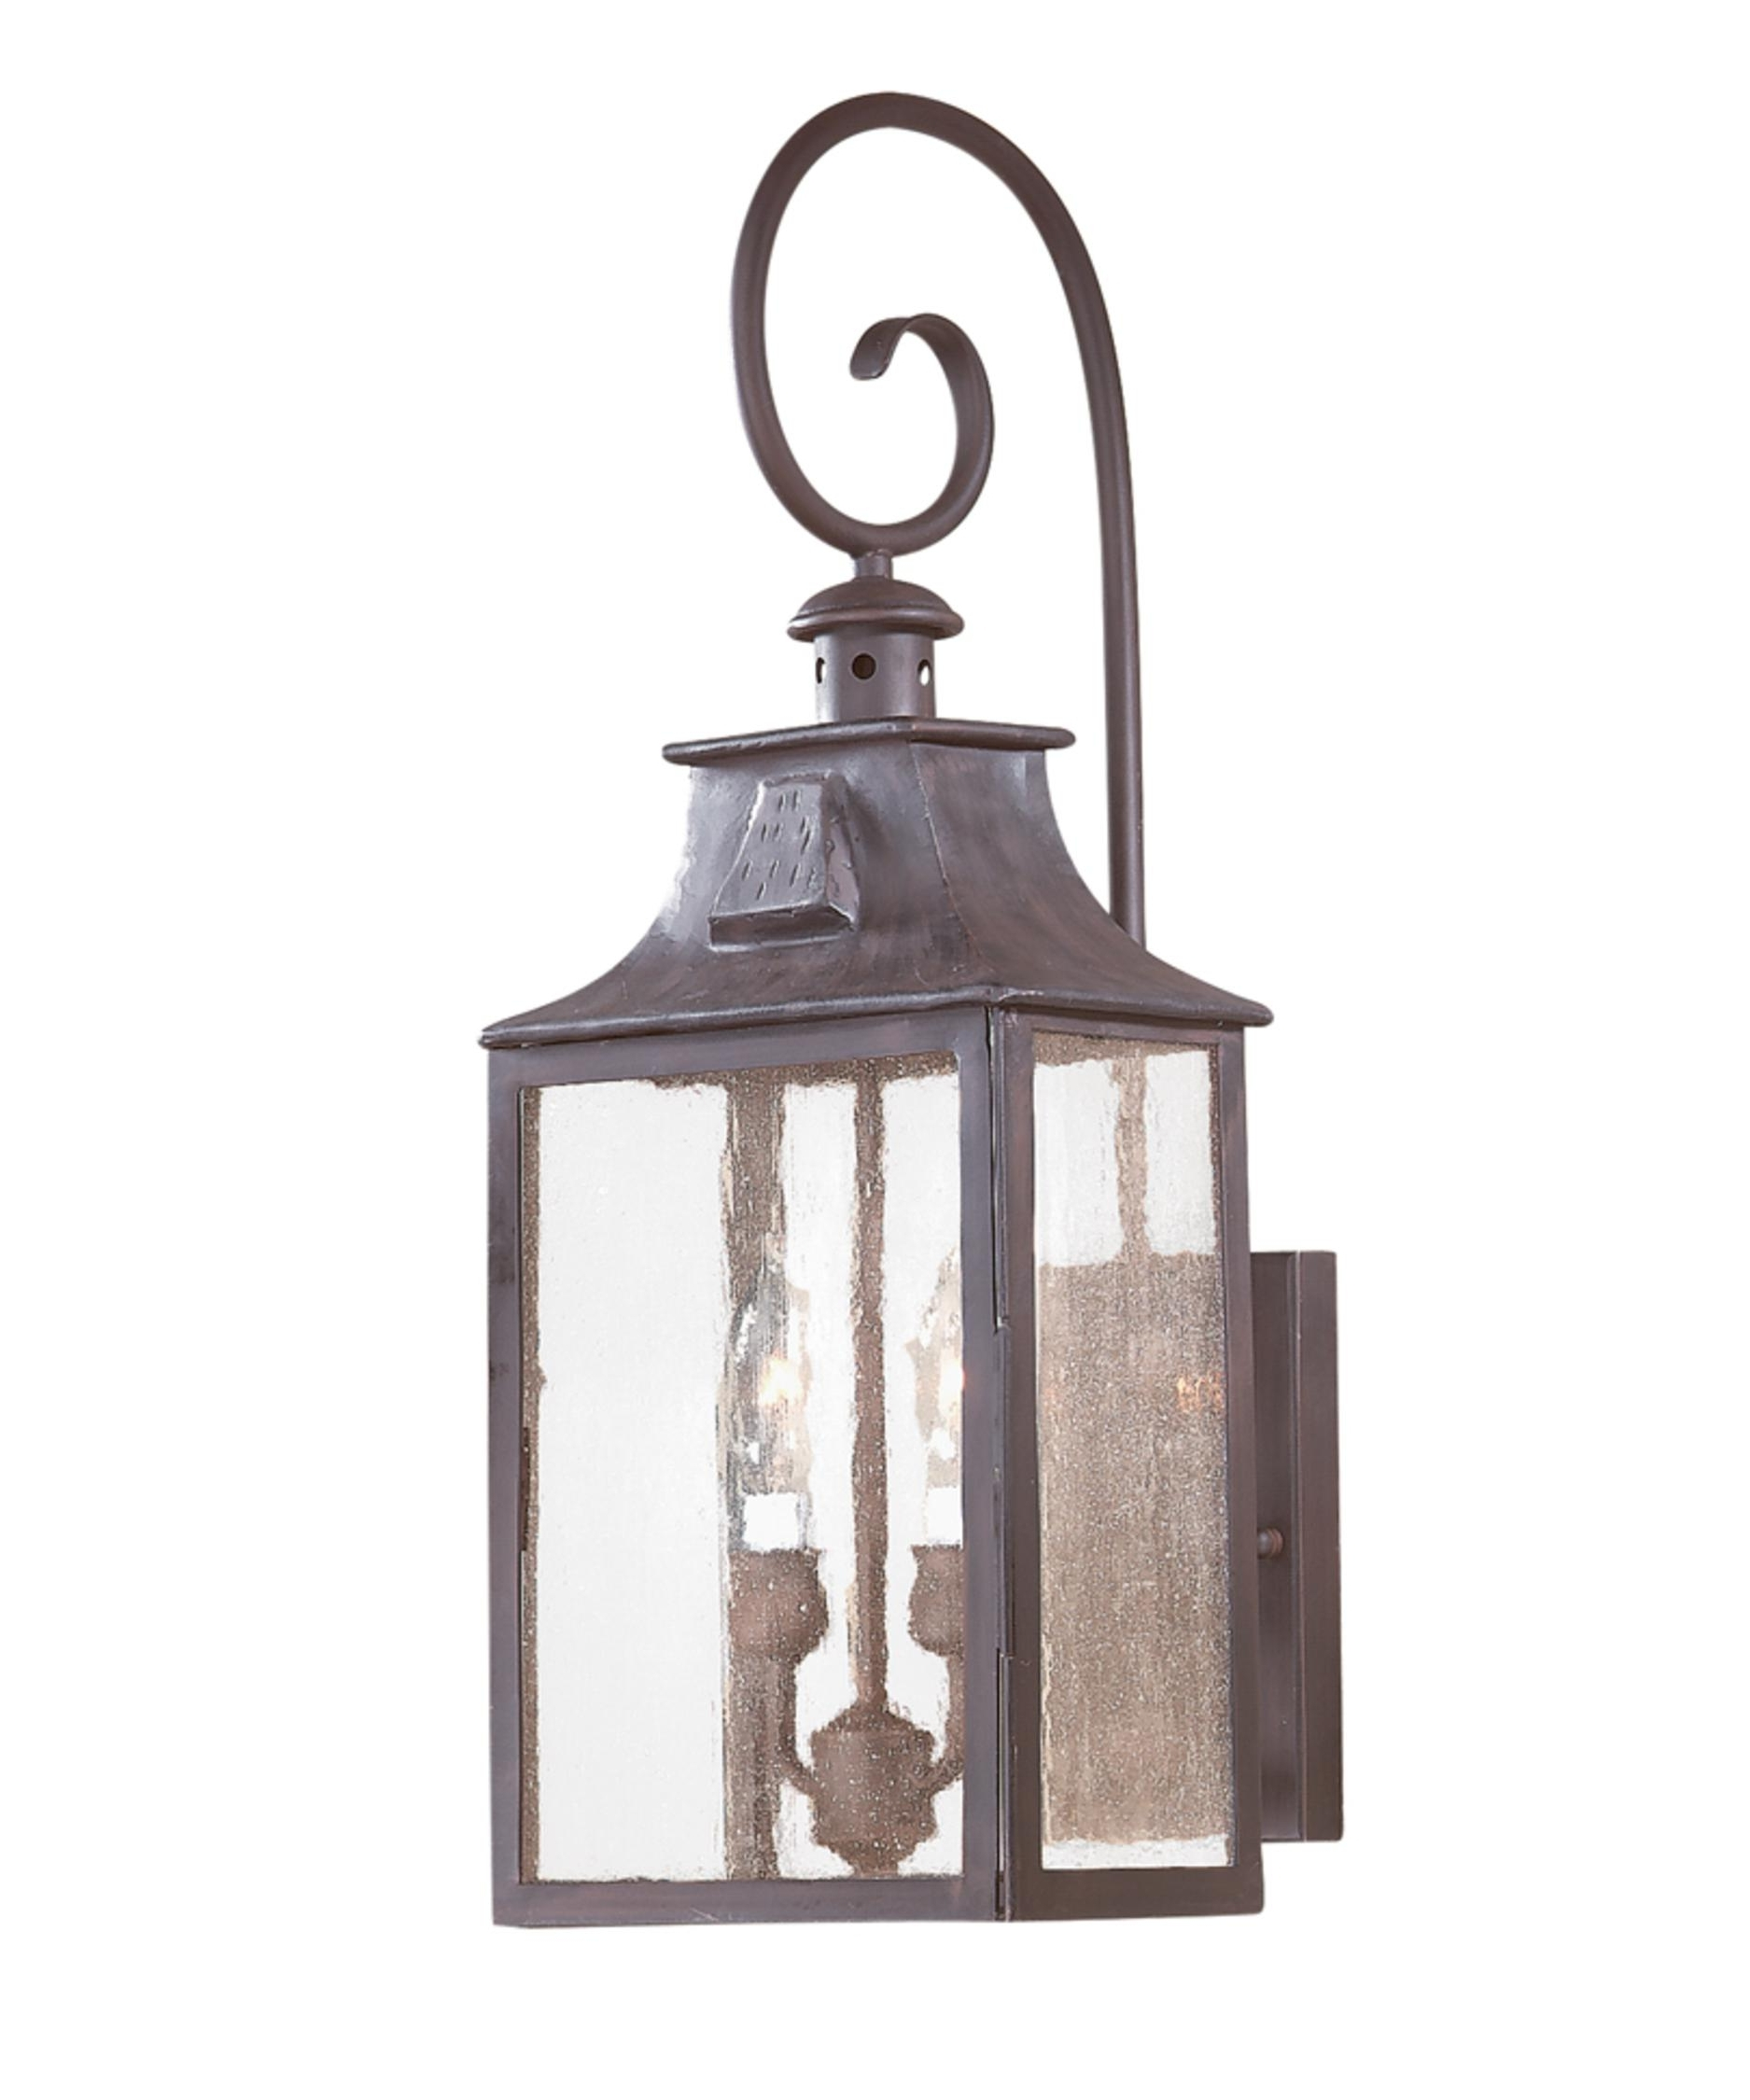 Outdoor Wall Lighting With Seeded Glass Pertaining To Famous Troy Lighting B9002 Newton 9 Inch Wide 2 Light Outdoor Wall Light (View 12 of 20)